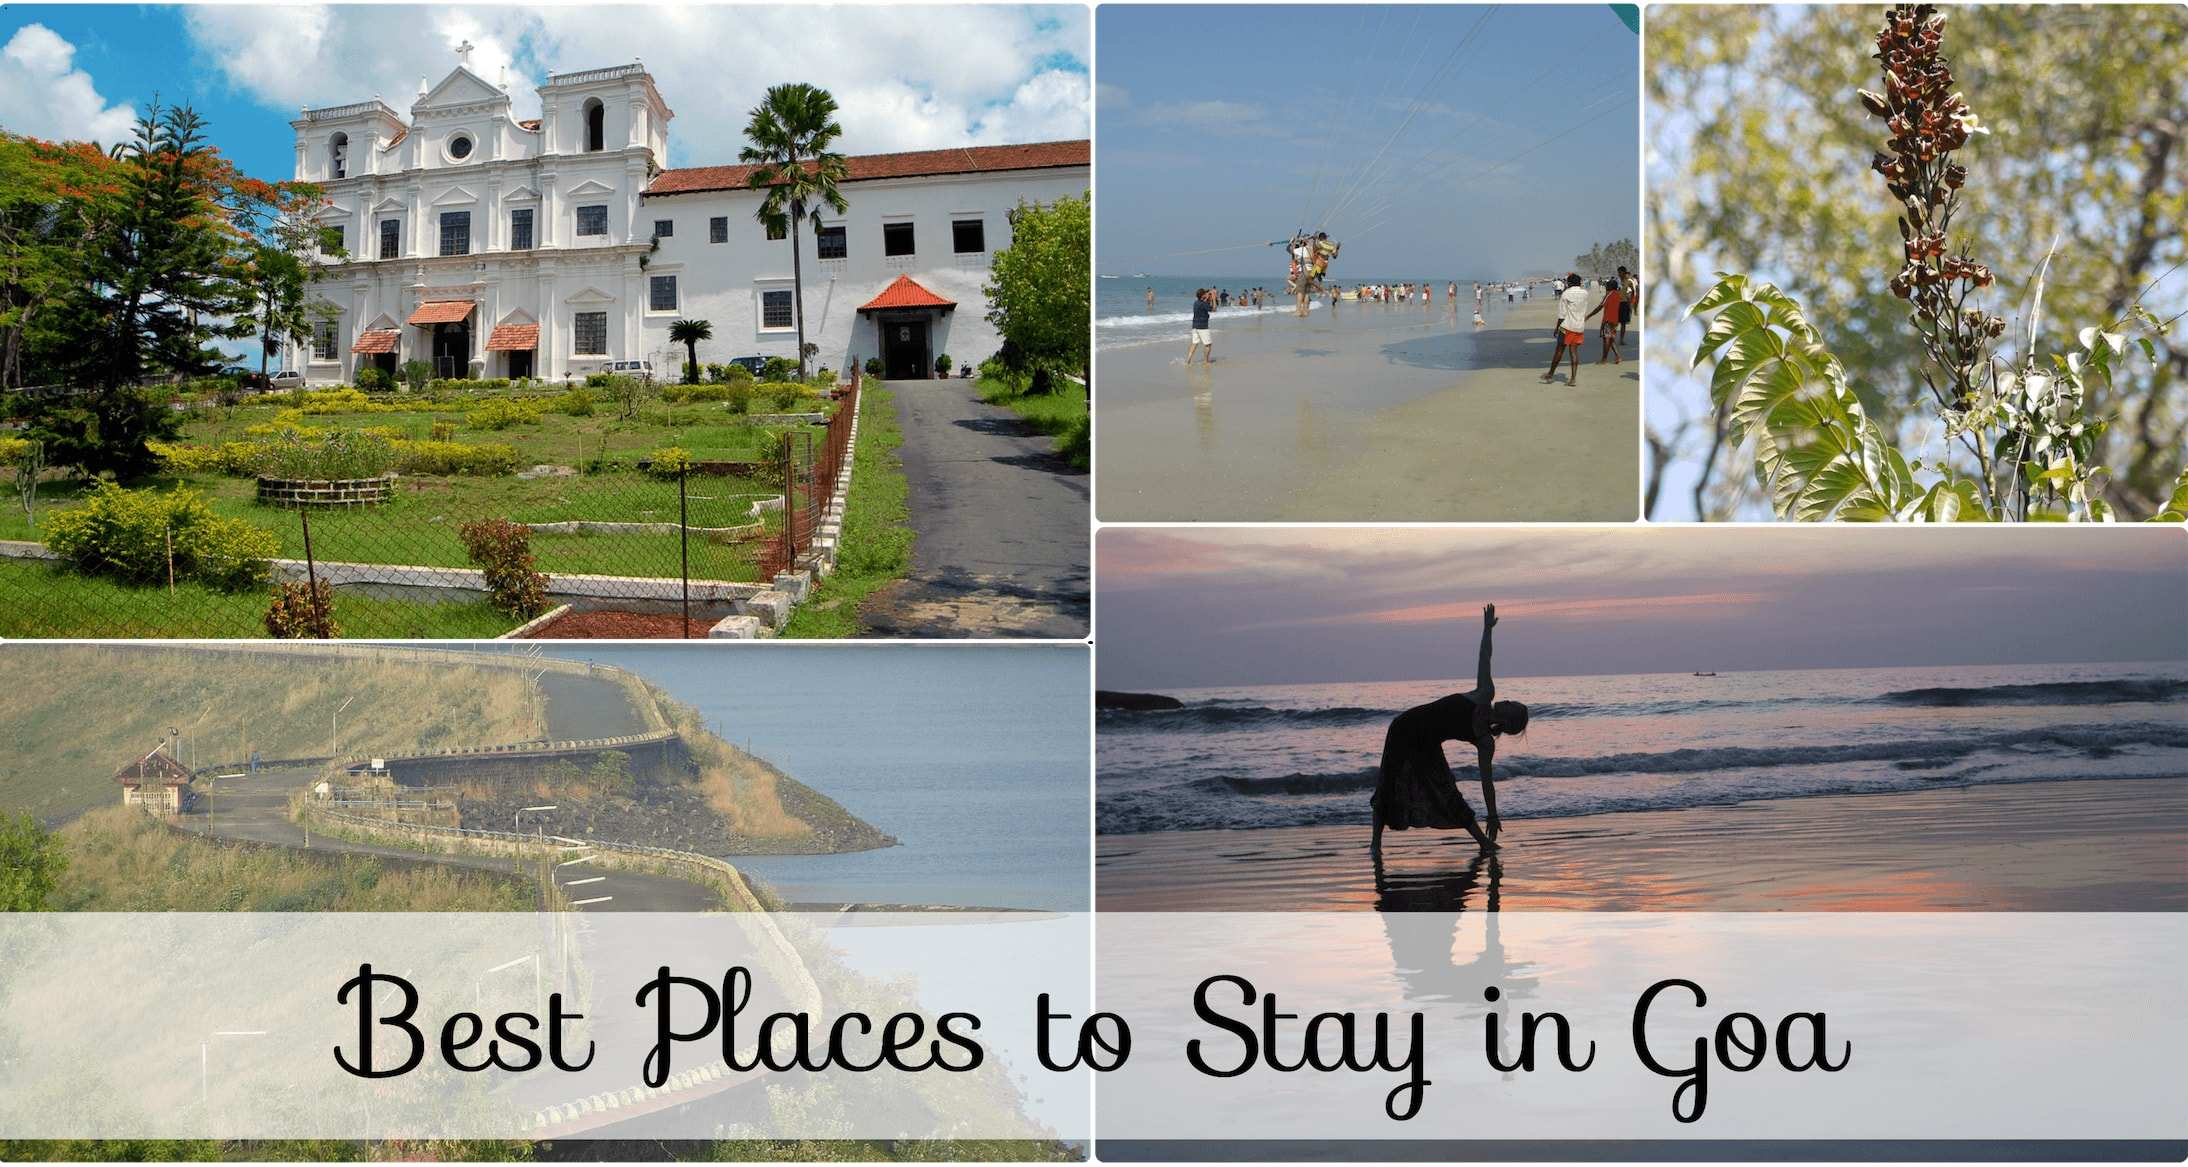 best-places-to-stay-in-goa.jpg